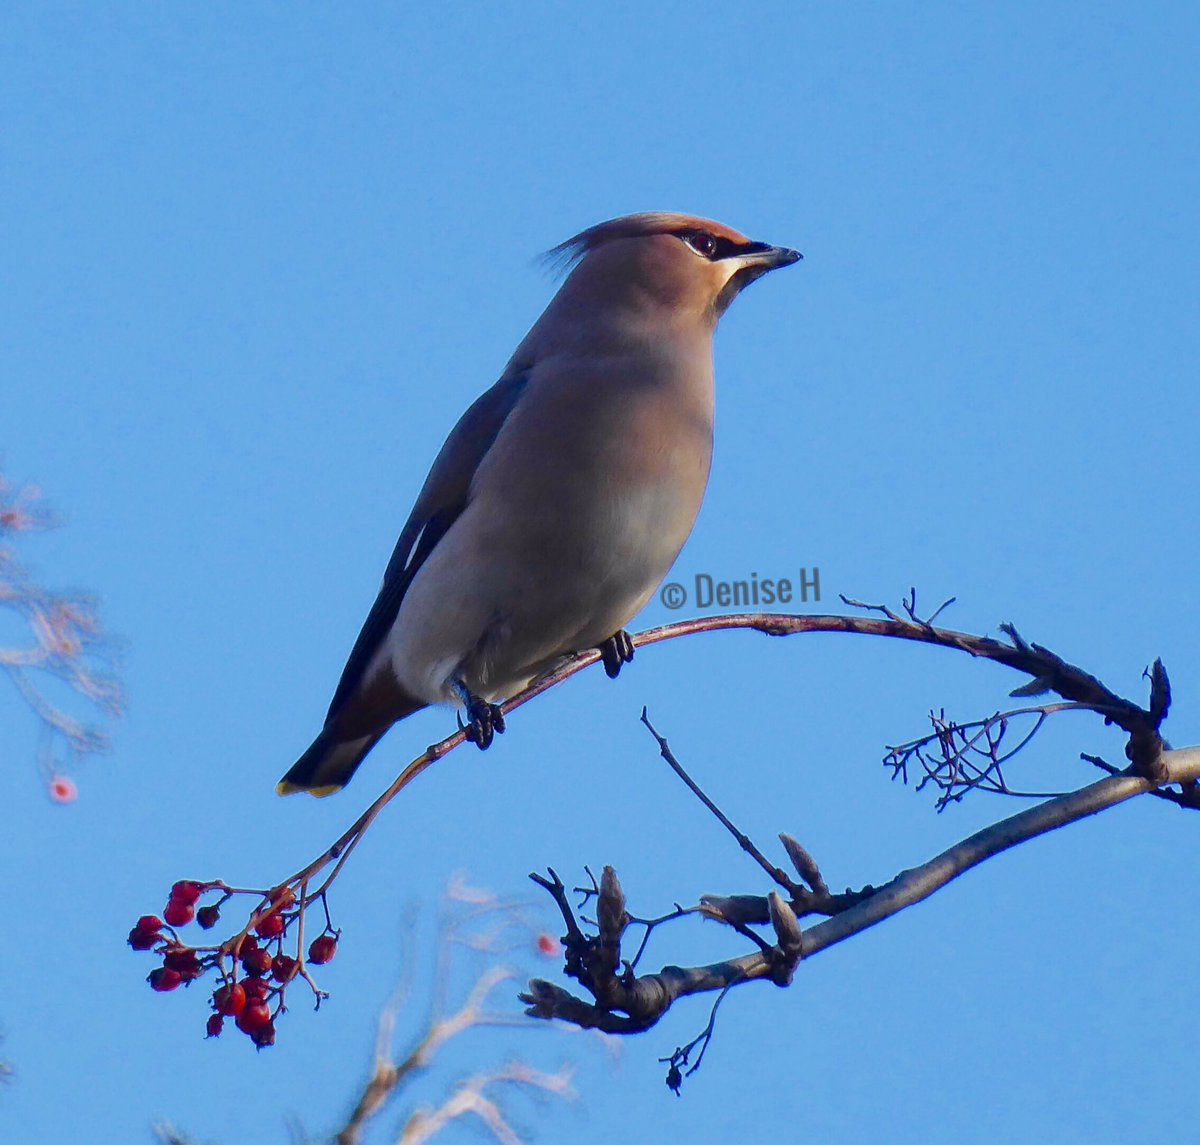 Morning! #HappyThursday. A #waxwing from earlier this year. @Natures_Voice @BBCEarth @BirdWatchingMag @wildlife_uk @wildlife_birds<br>http://pic.twitter.com/lagQkJ0GzM